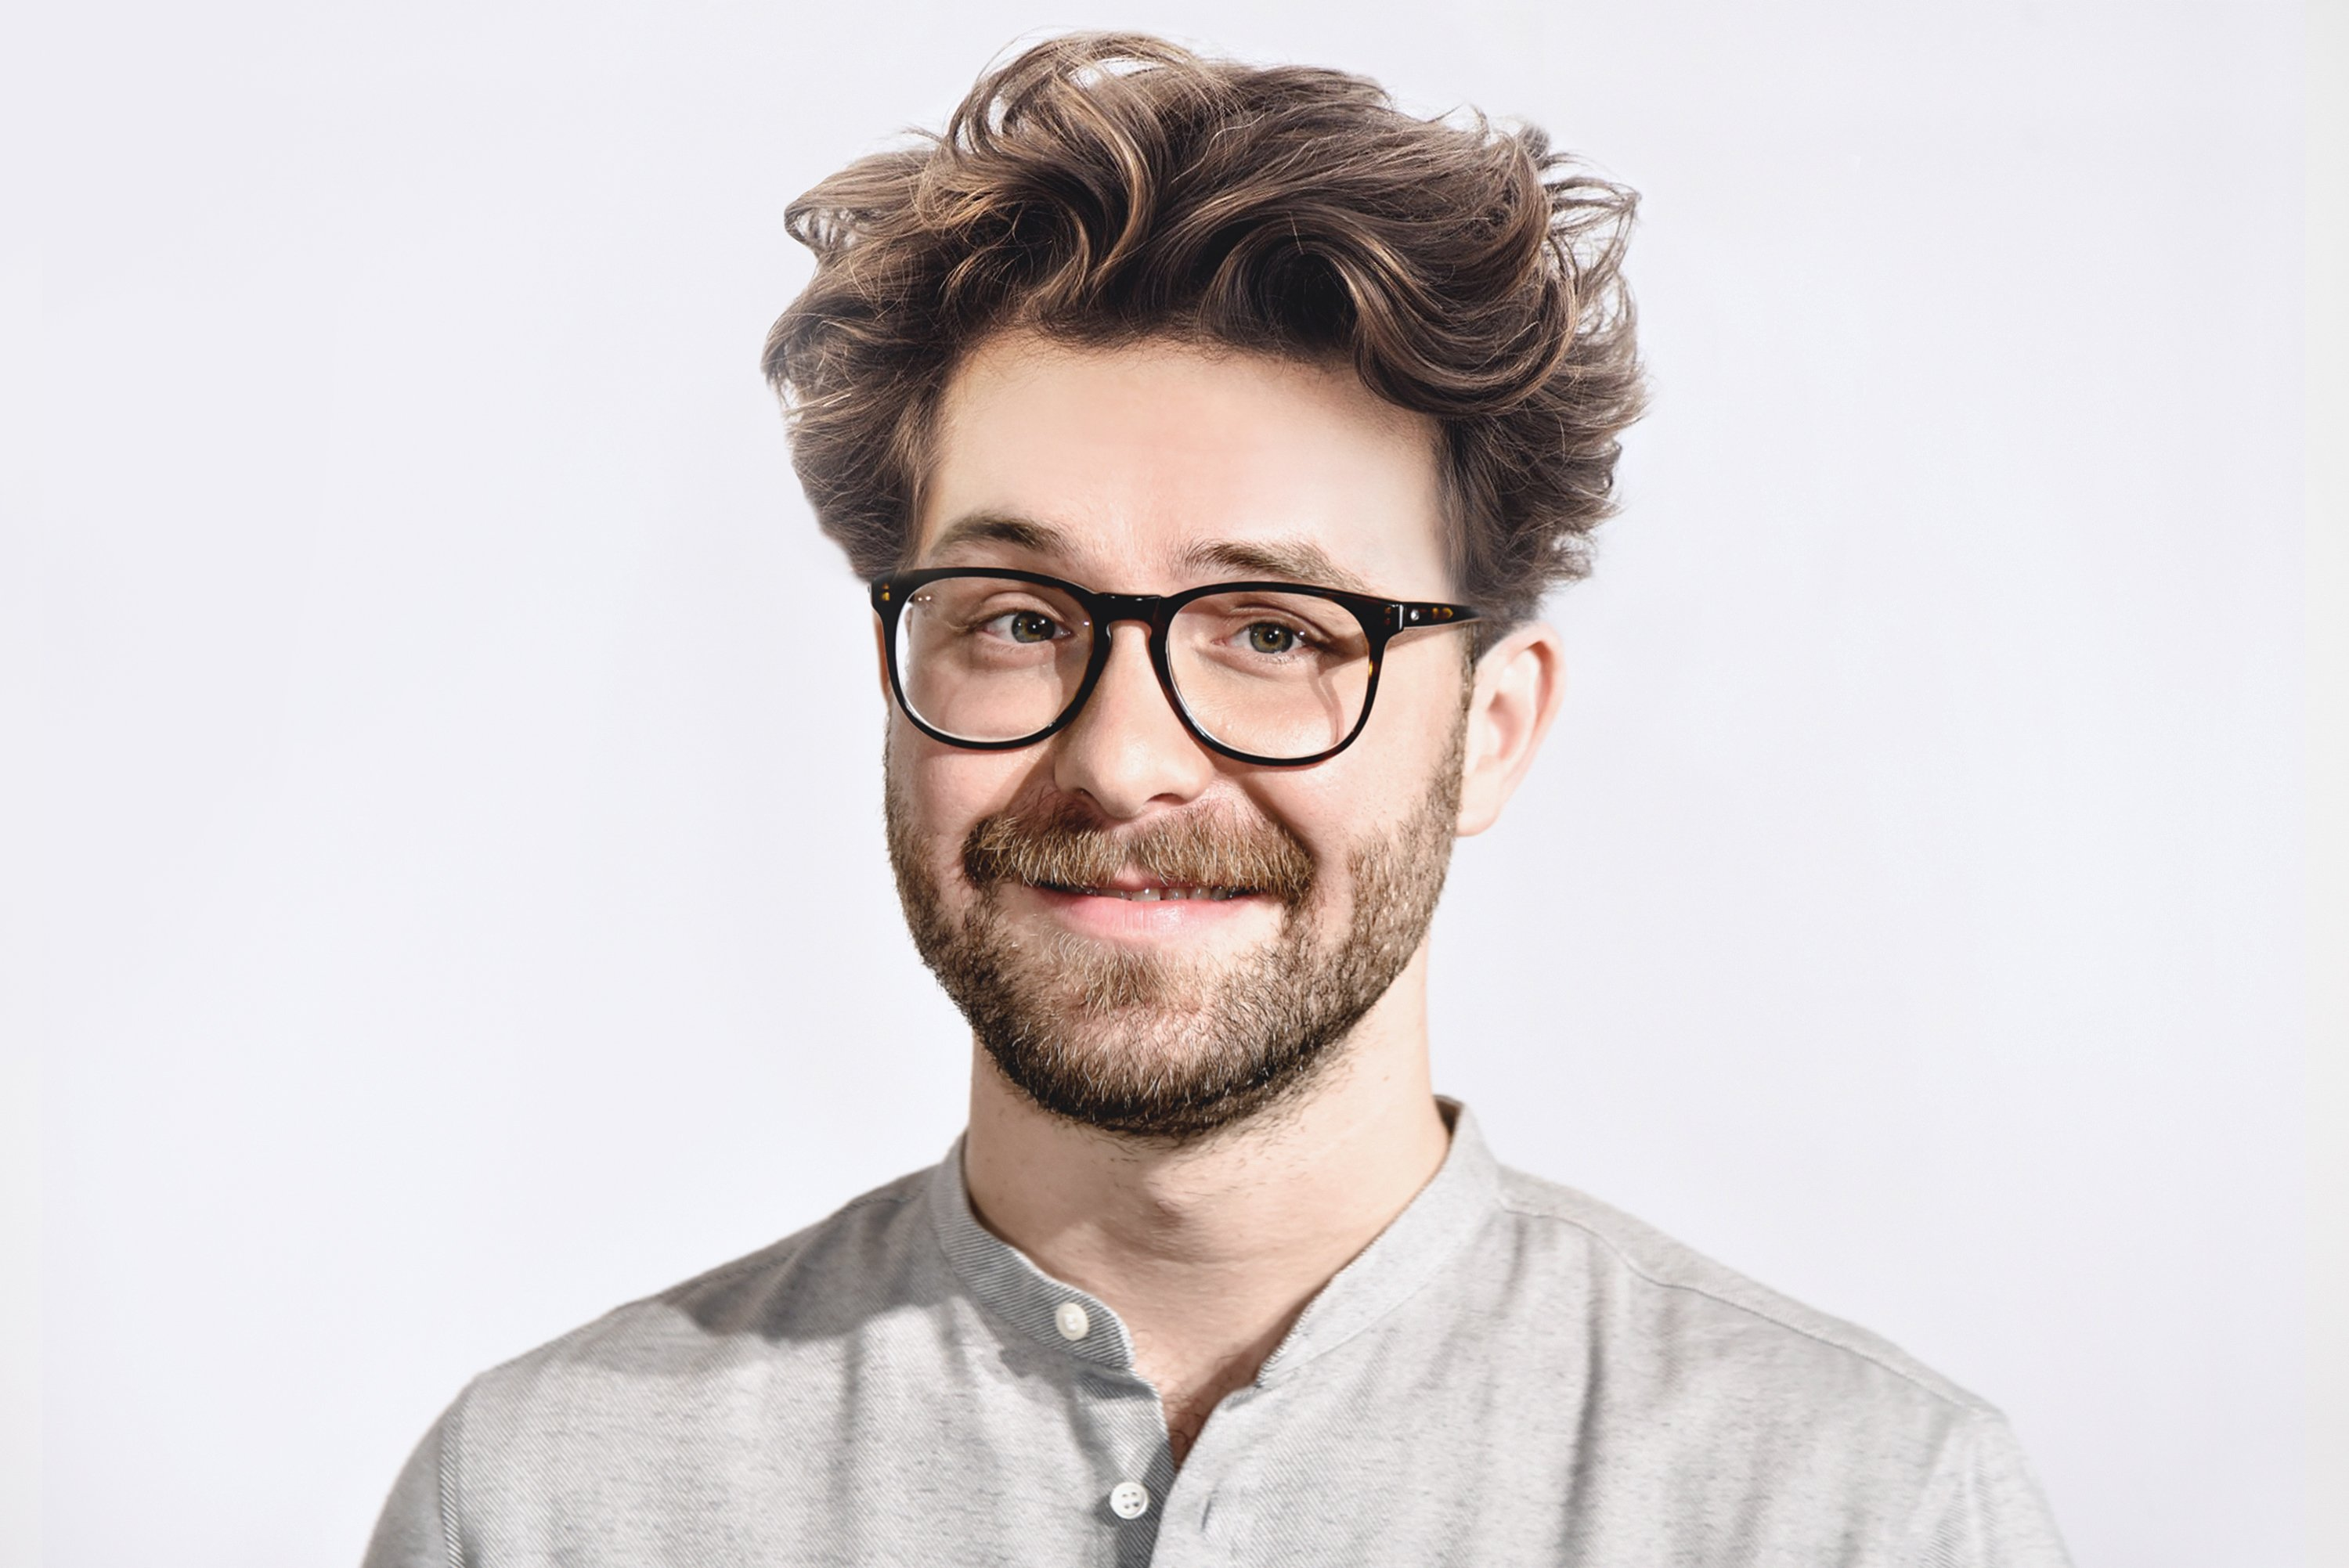 Mark Forster (Photoshop) | Quelle: Getty Images/Photoshop